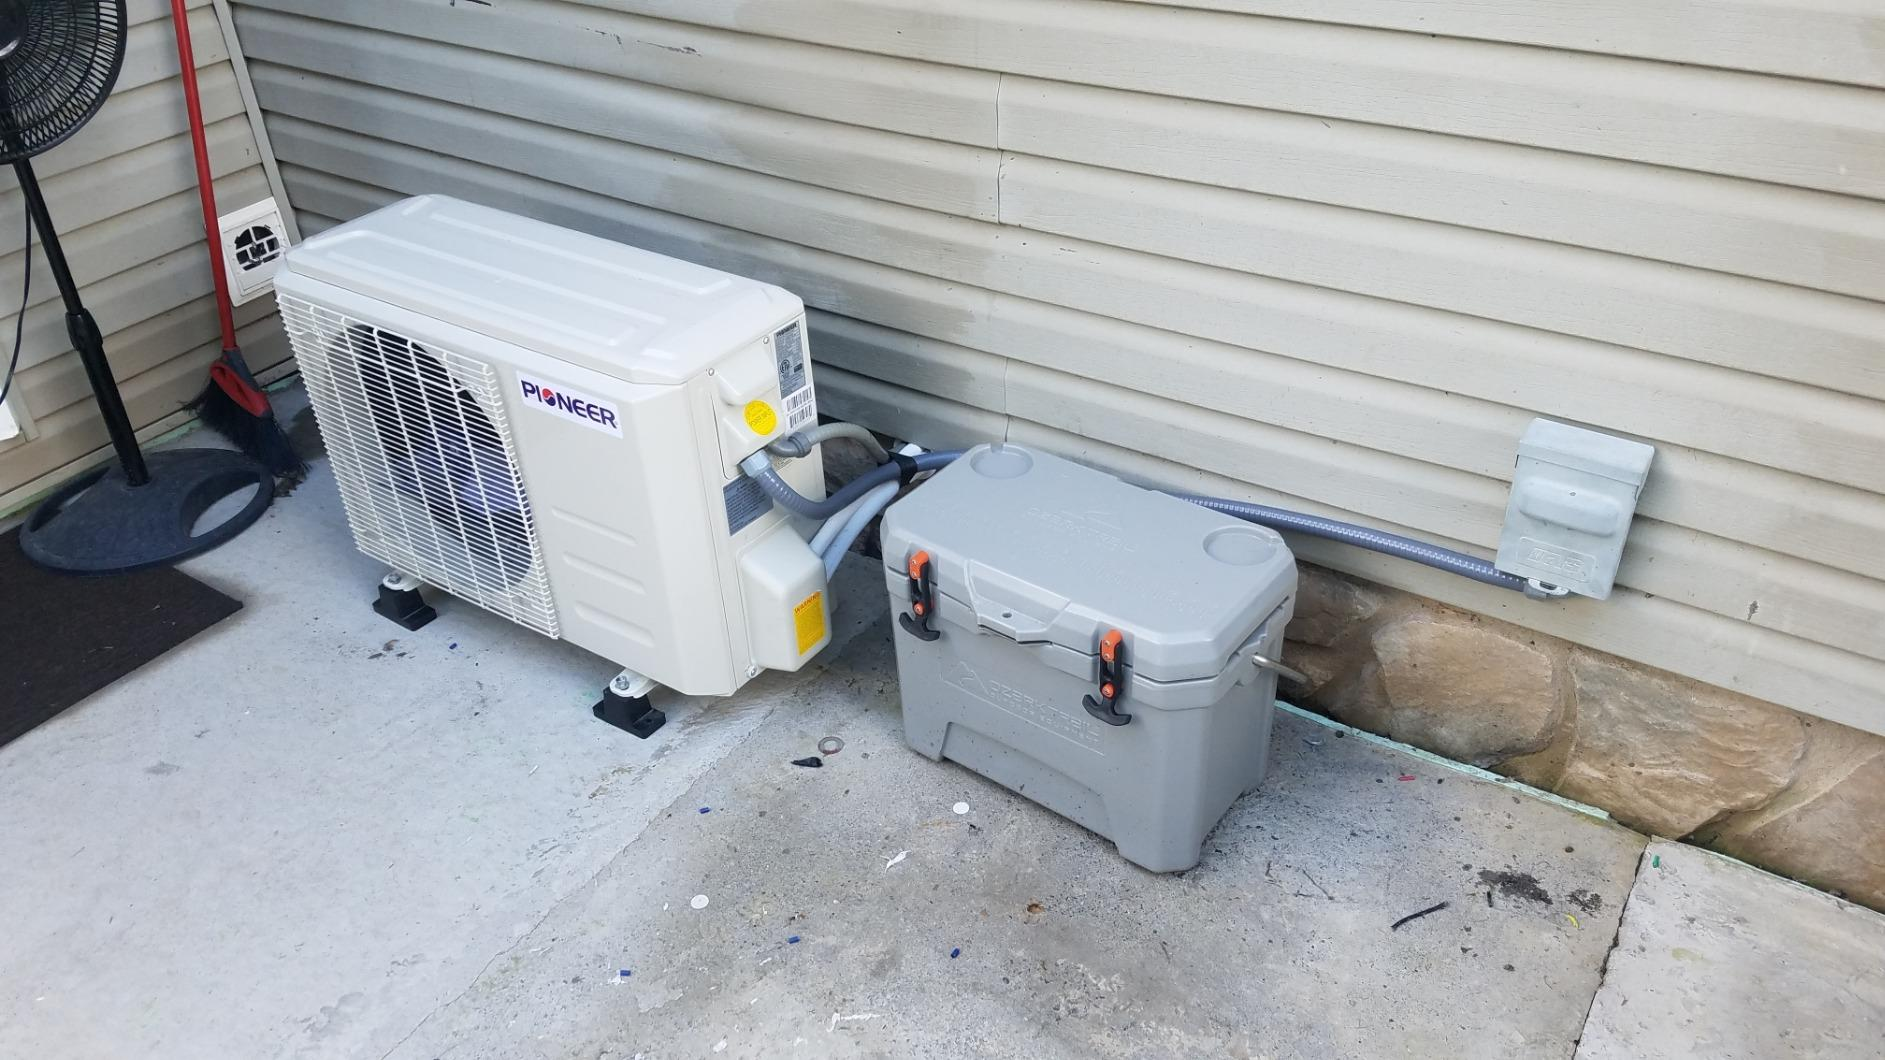 Is this this the answer to my question, what size HVAC do I need?